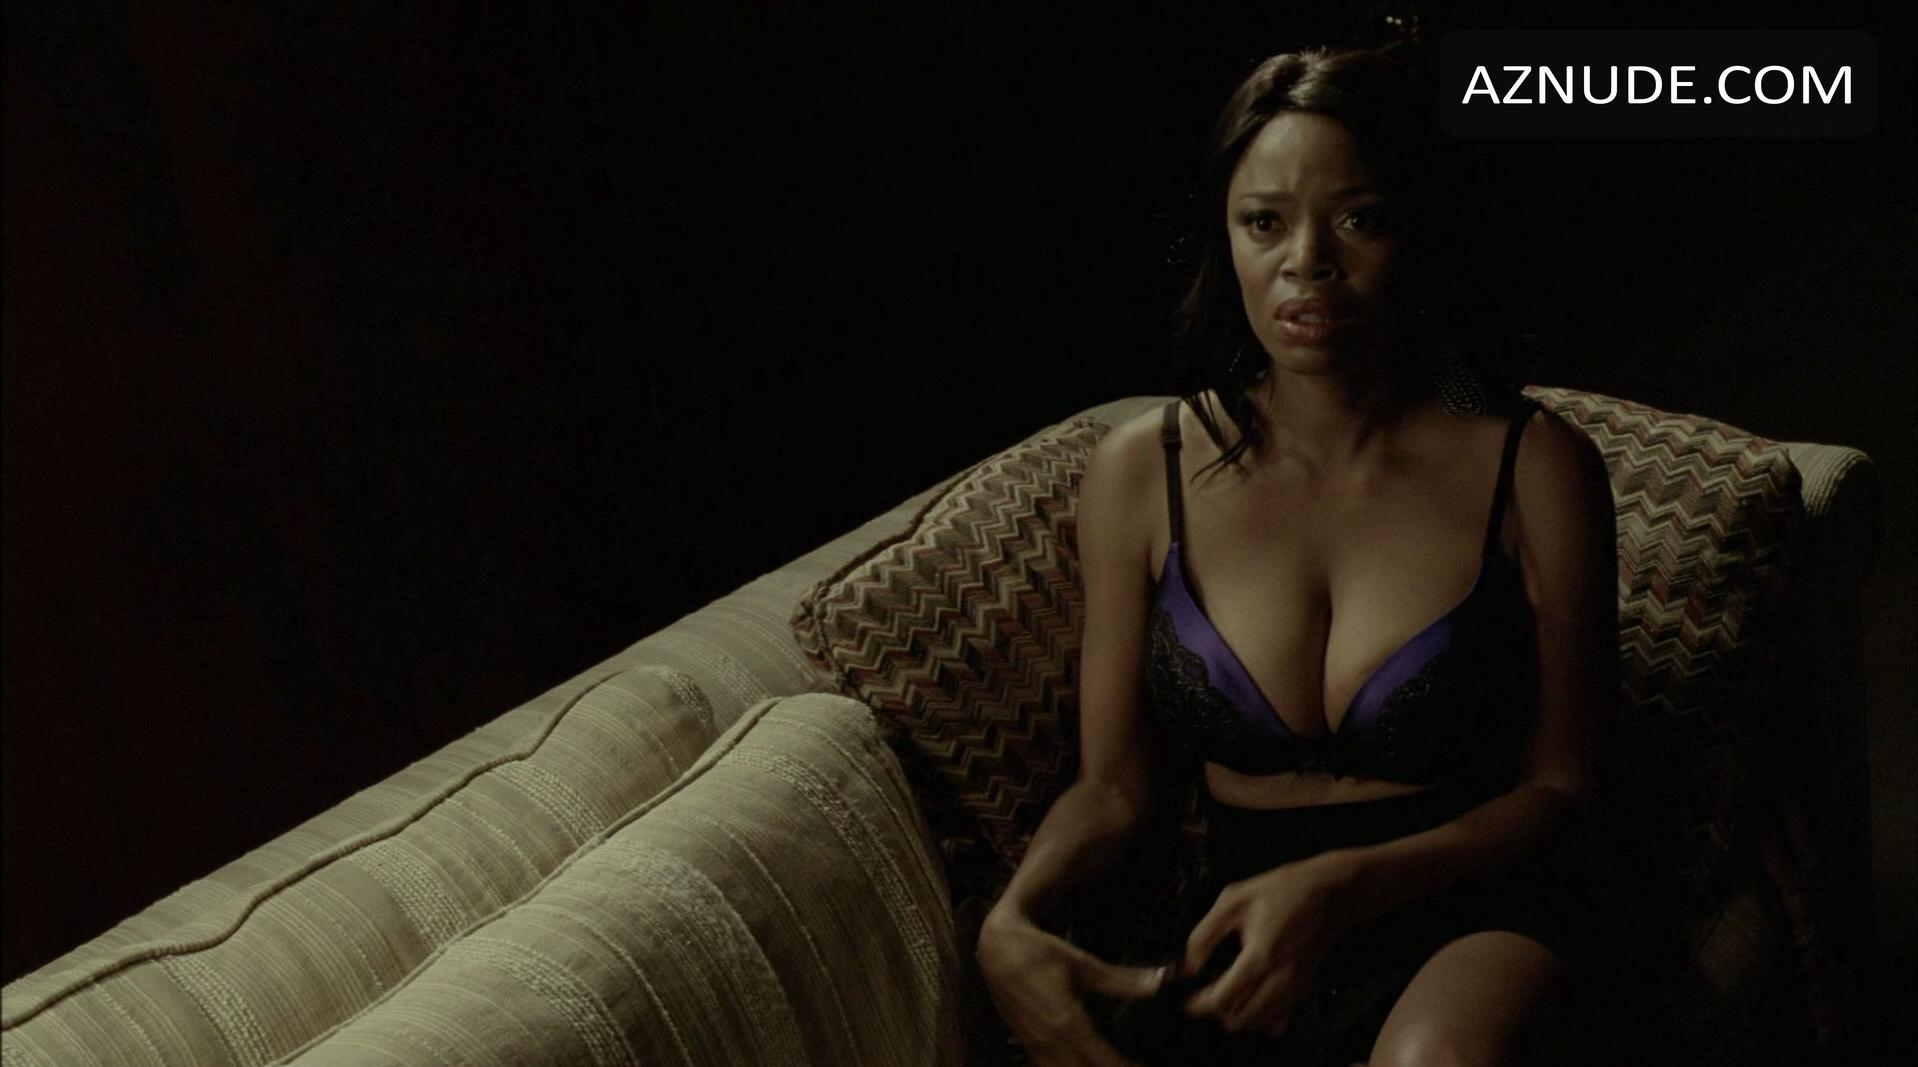 nude Jill actress marie jones